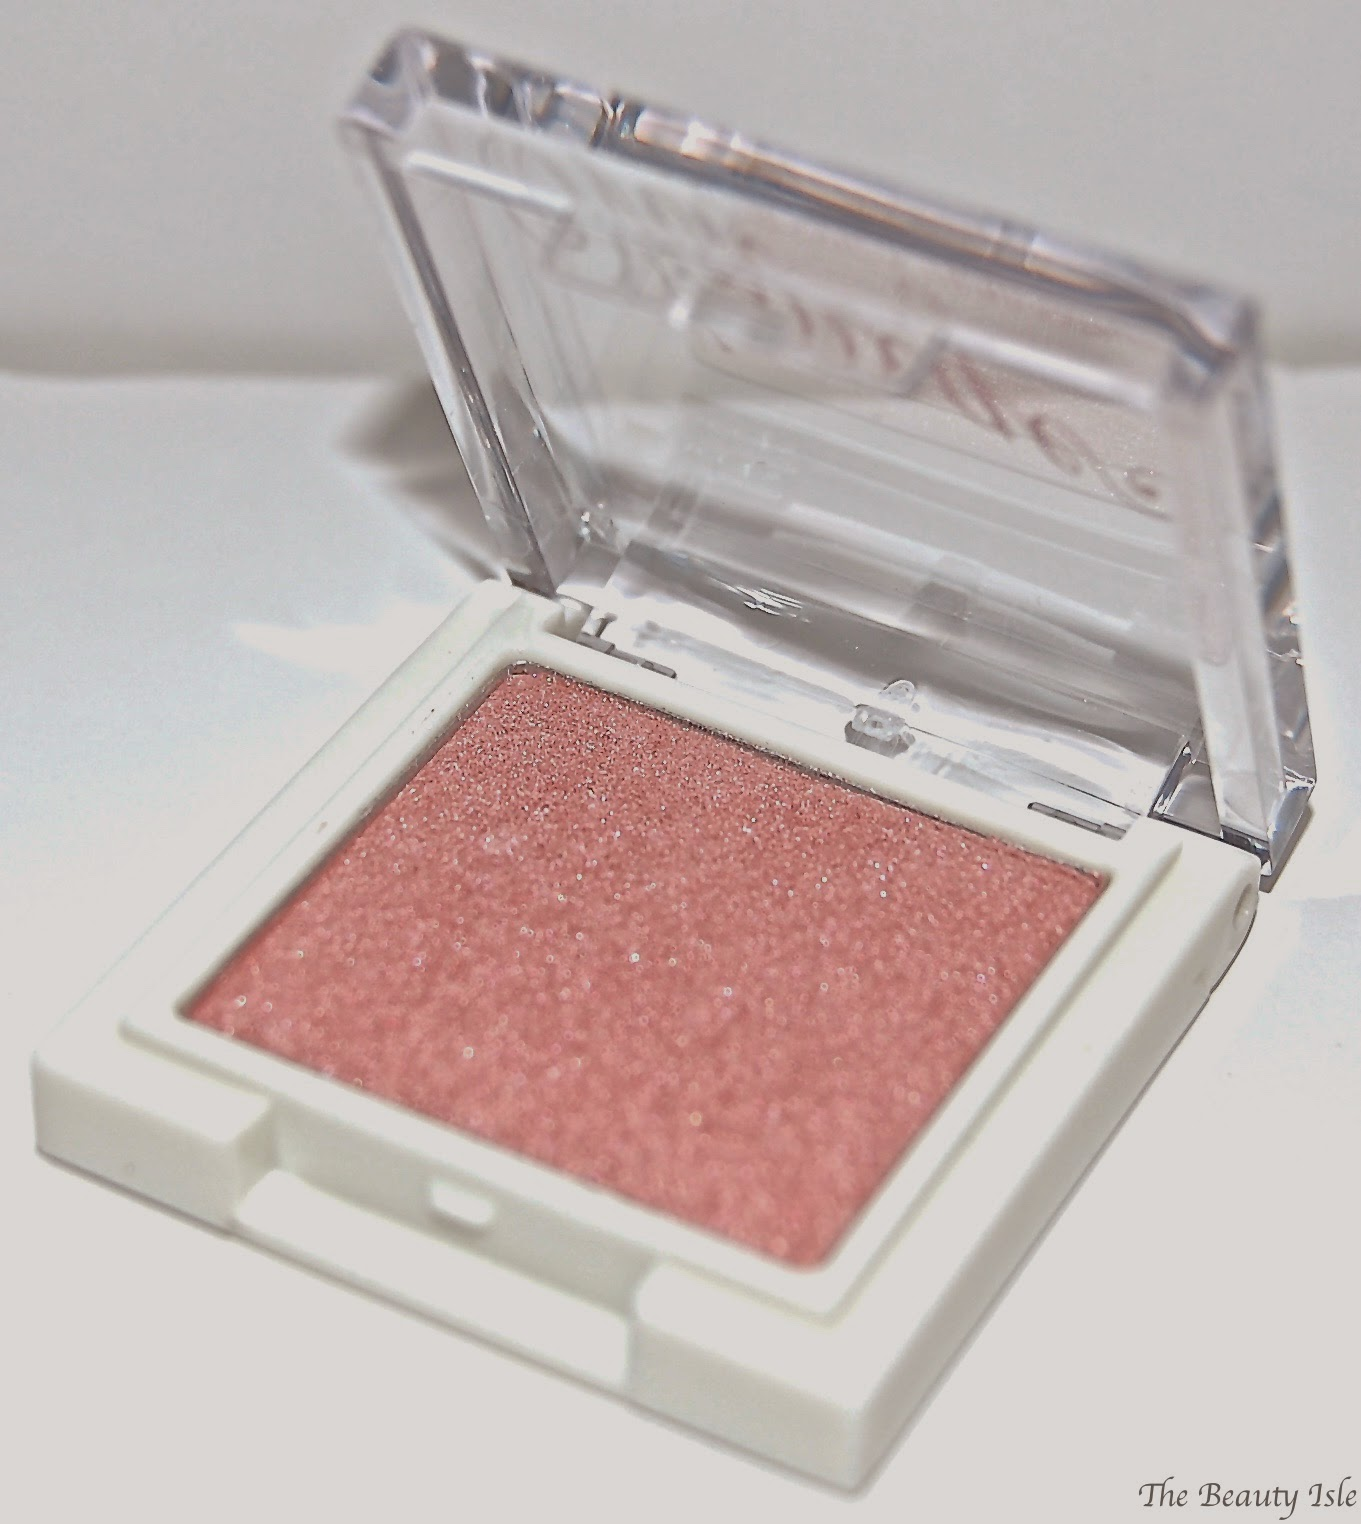 Vintage Cosmetics Illuminating Face Highlighter in Crystal Pink